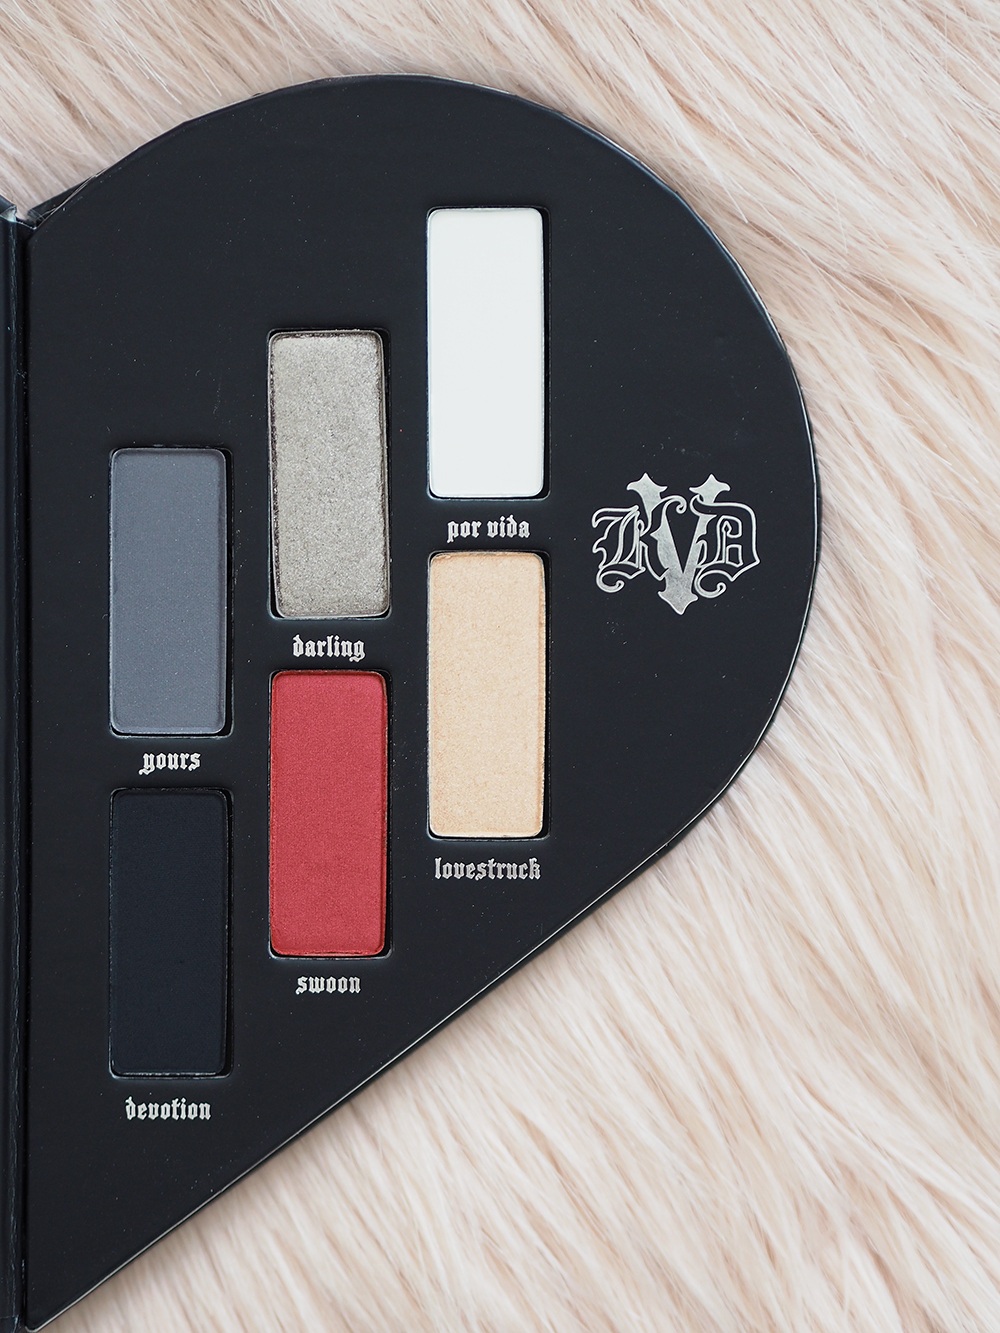 Too Faced and Kat Von D Better Together Palette